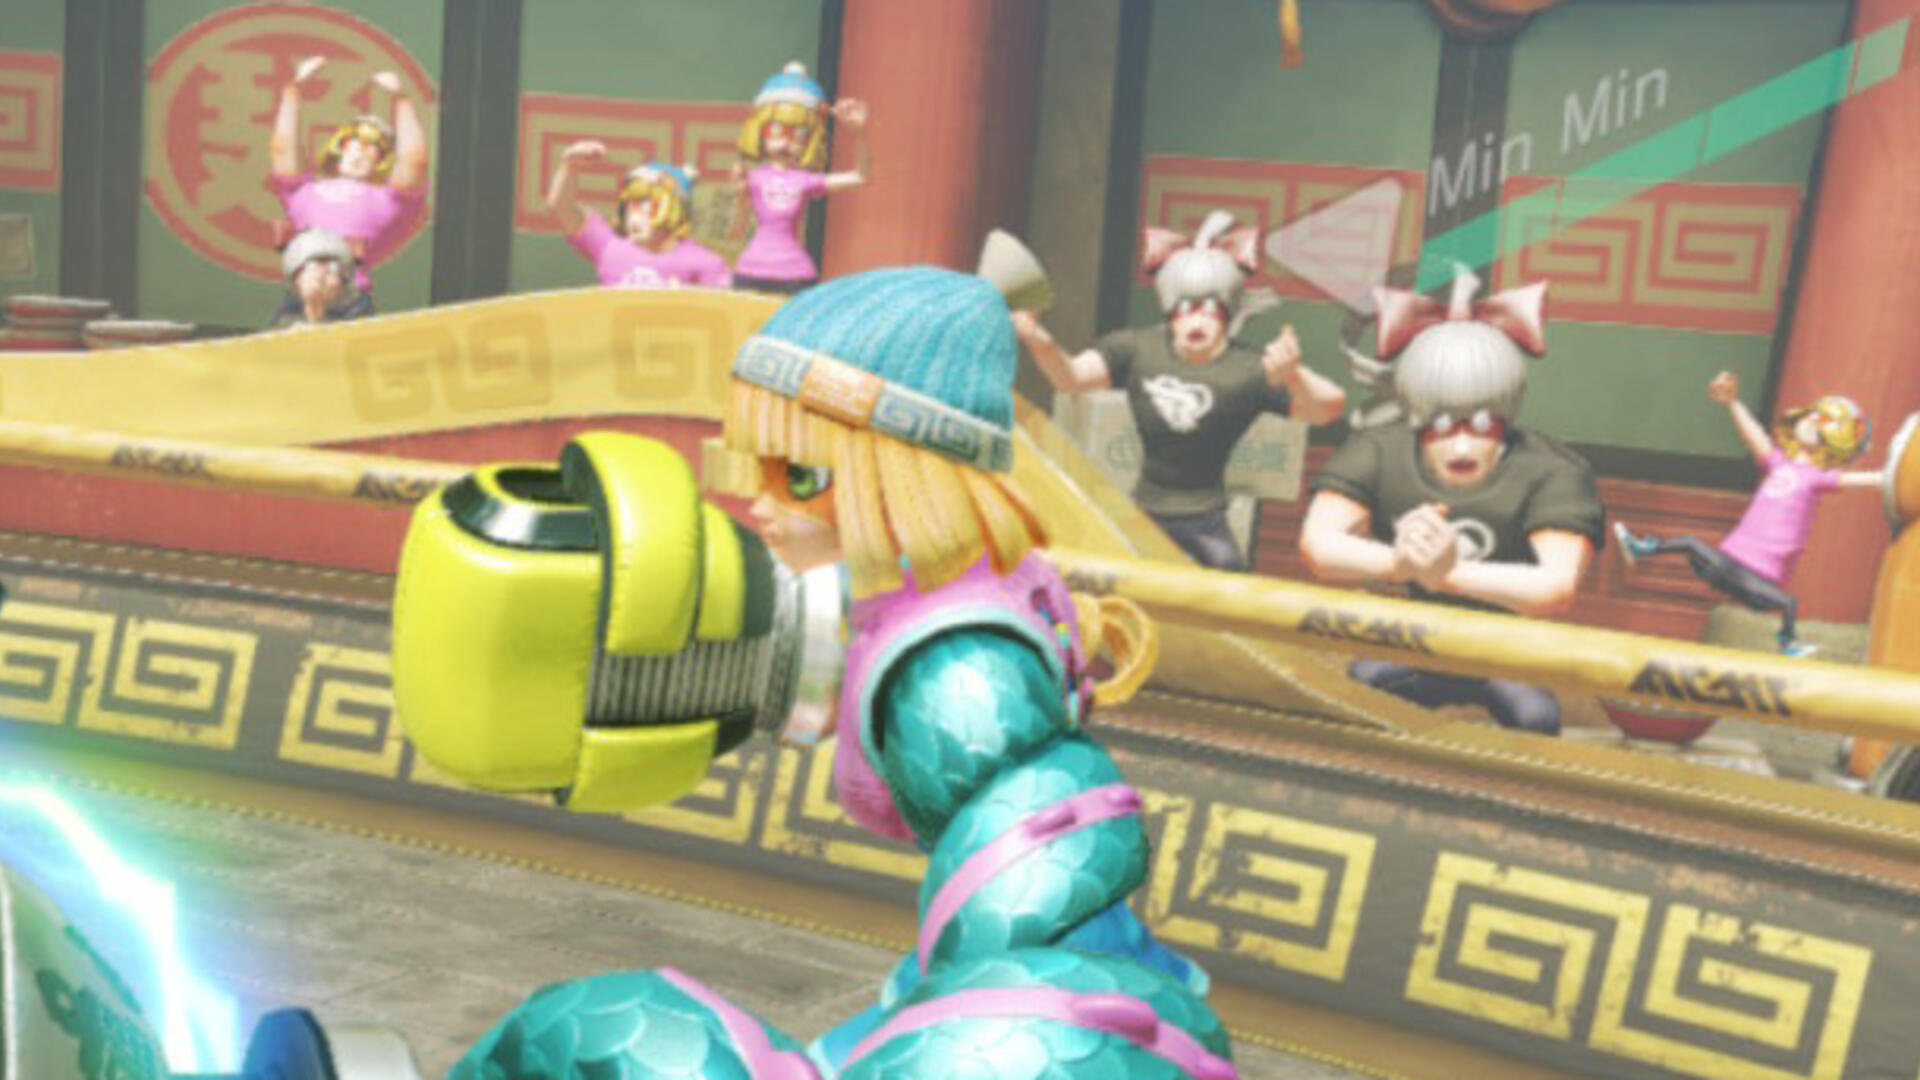 The Crowds in Arms Endearingly Cosplay as the Fighters They Love Most